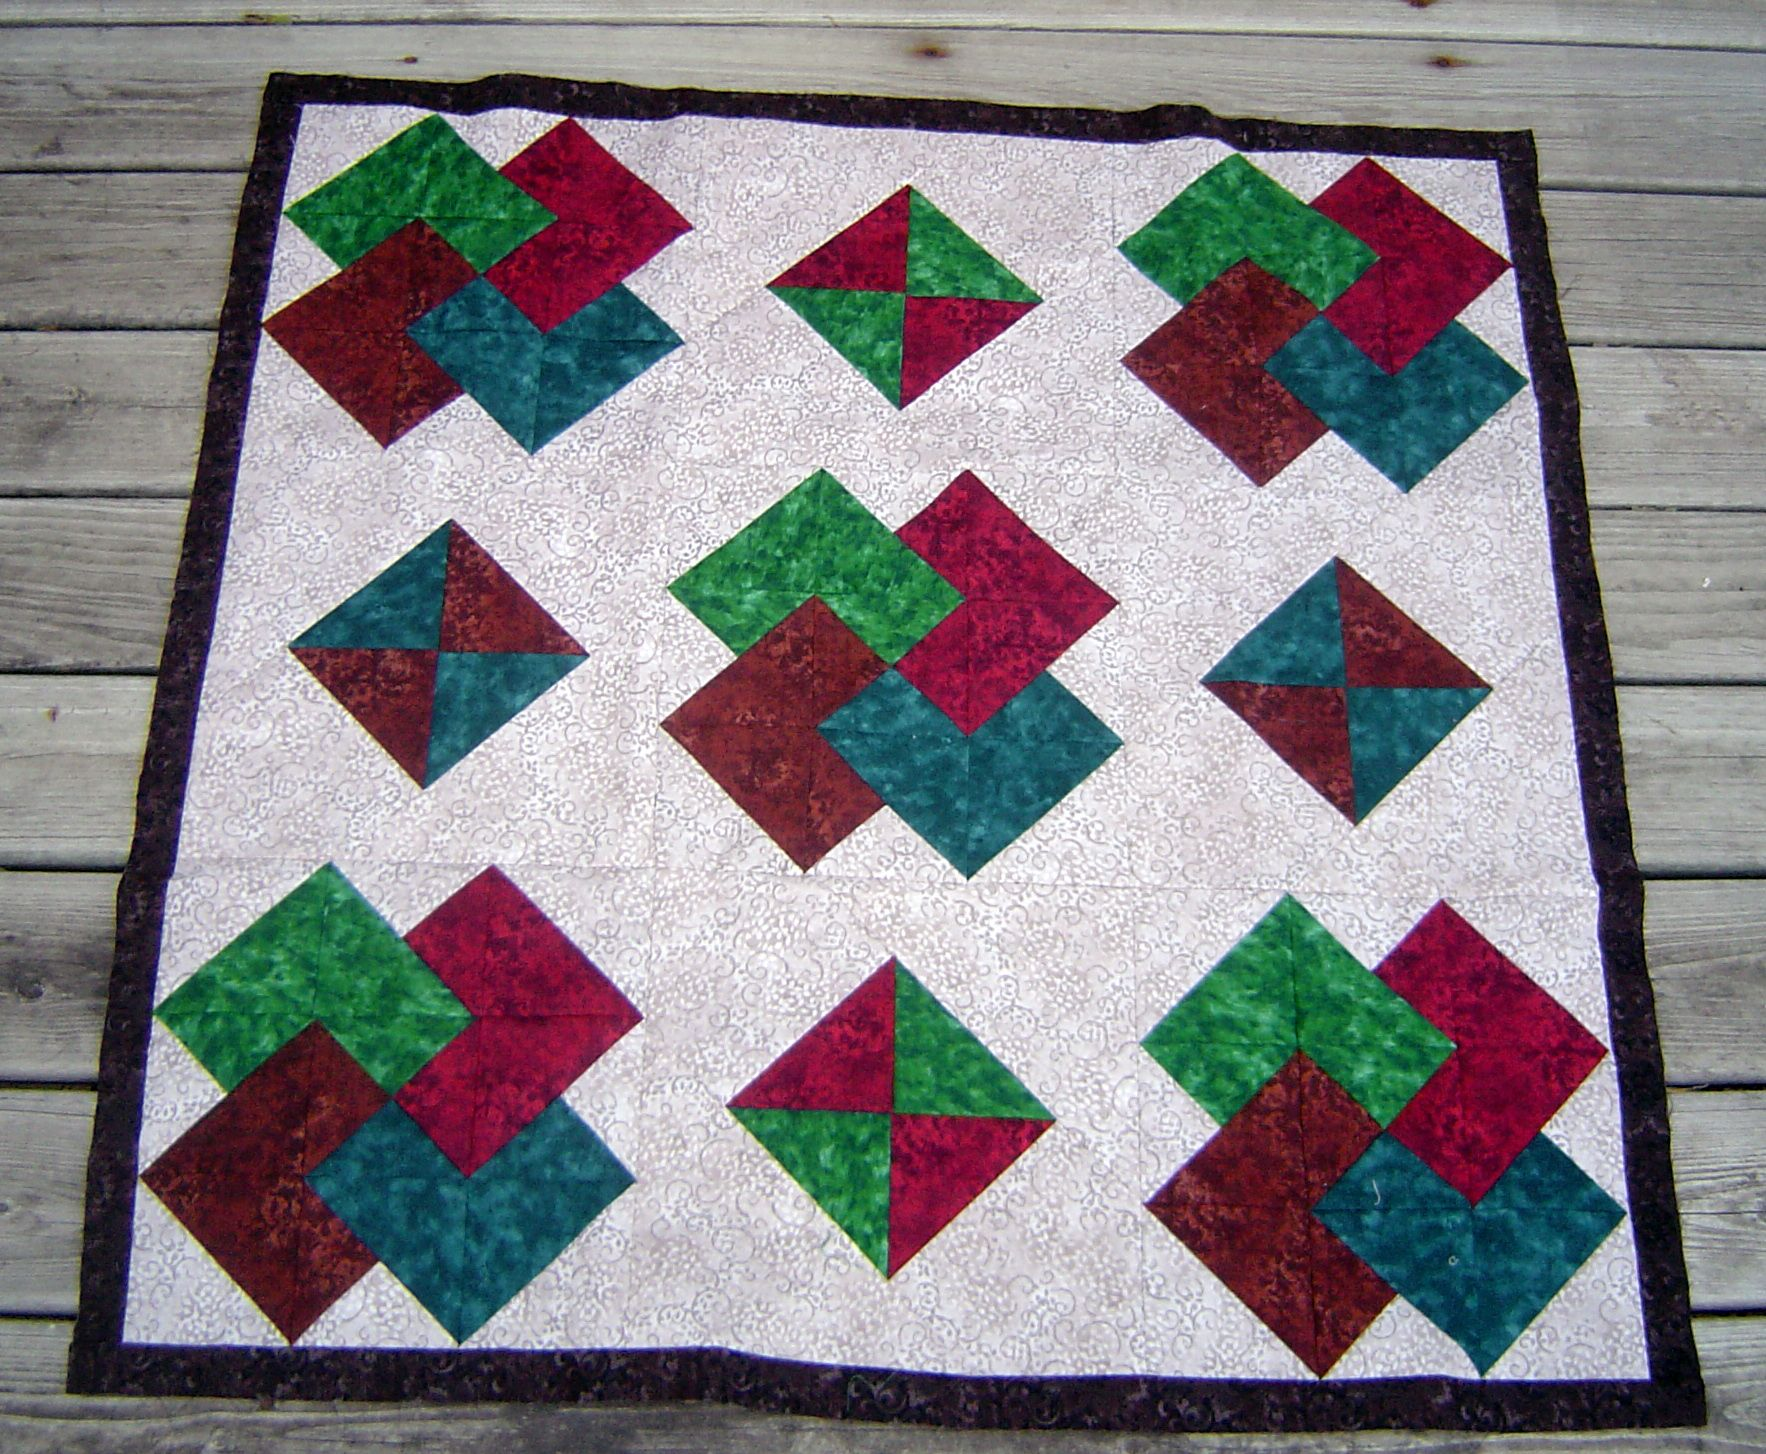 20.3 Borders Abound | Card tricks, Patchwork and Quilting projects : card trick quilt block - Adamdwight.com